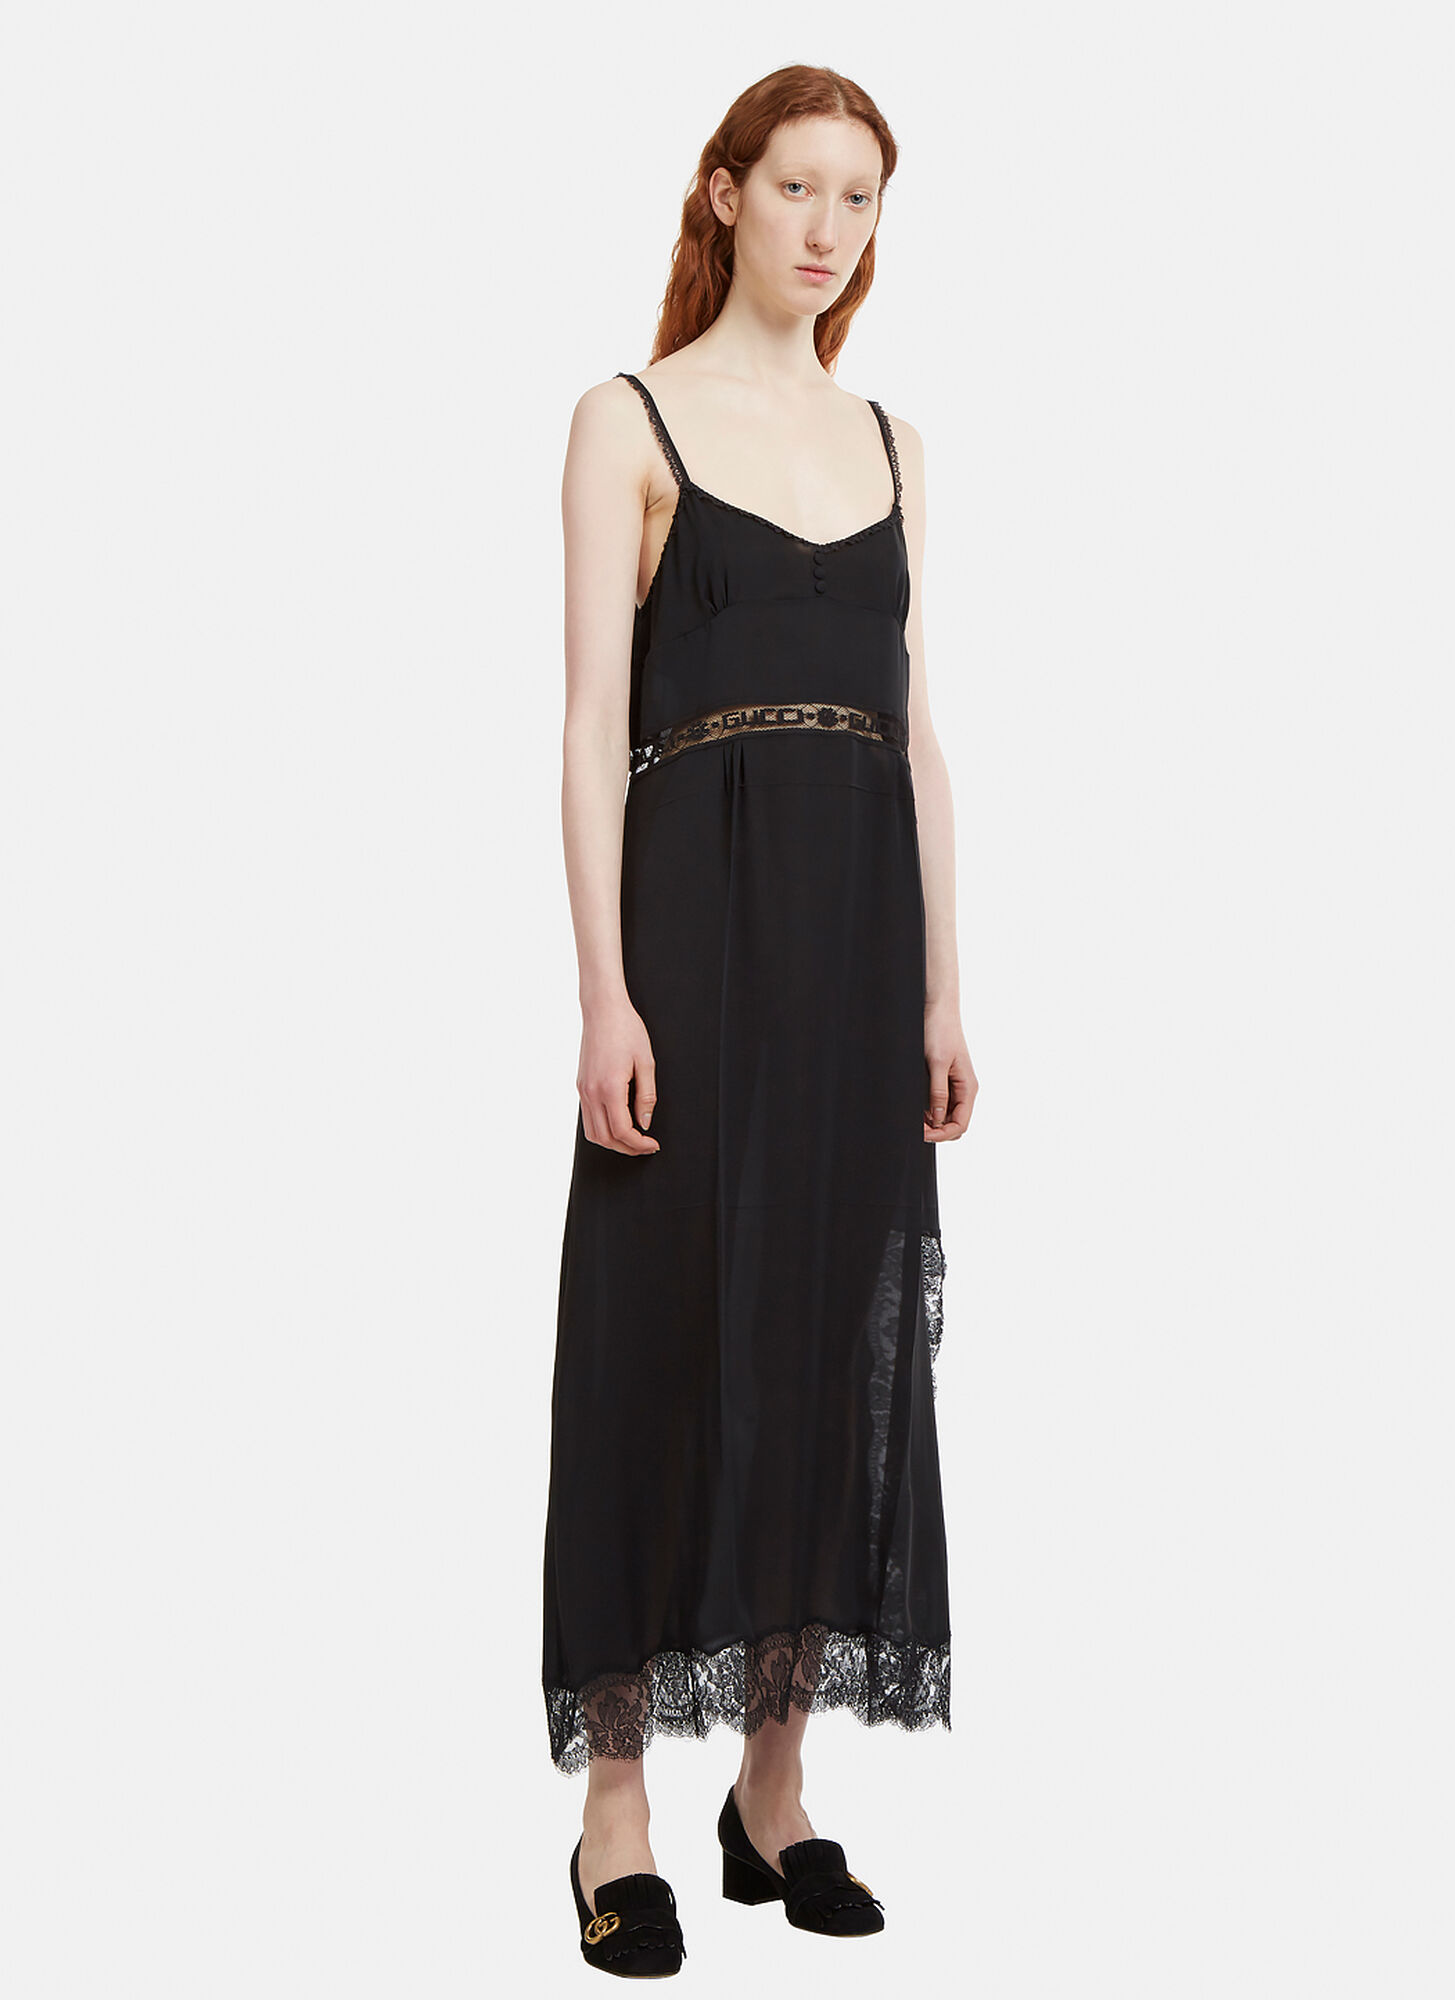 Gucci Silk dress in Black